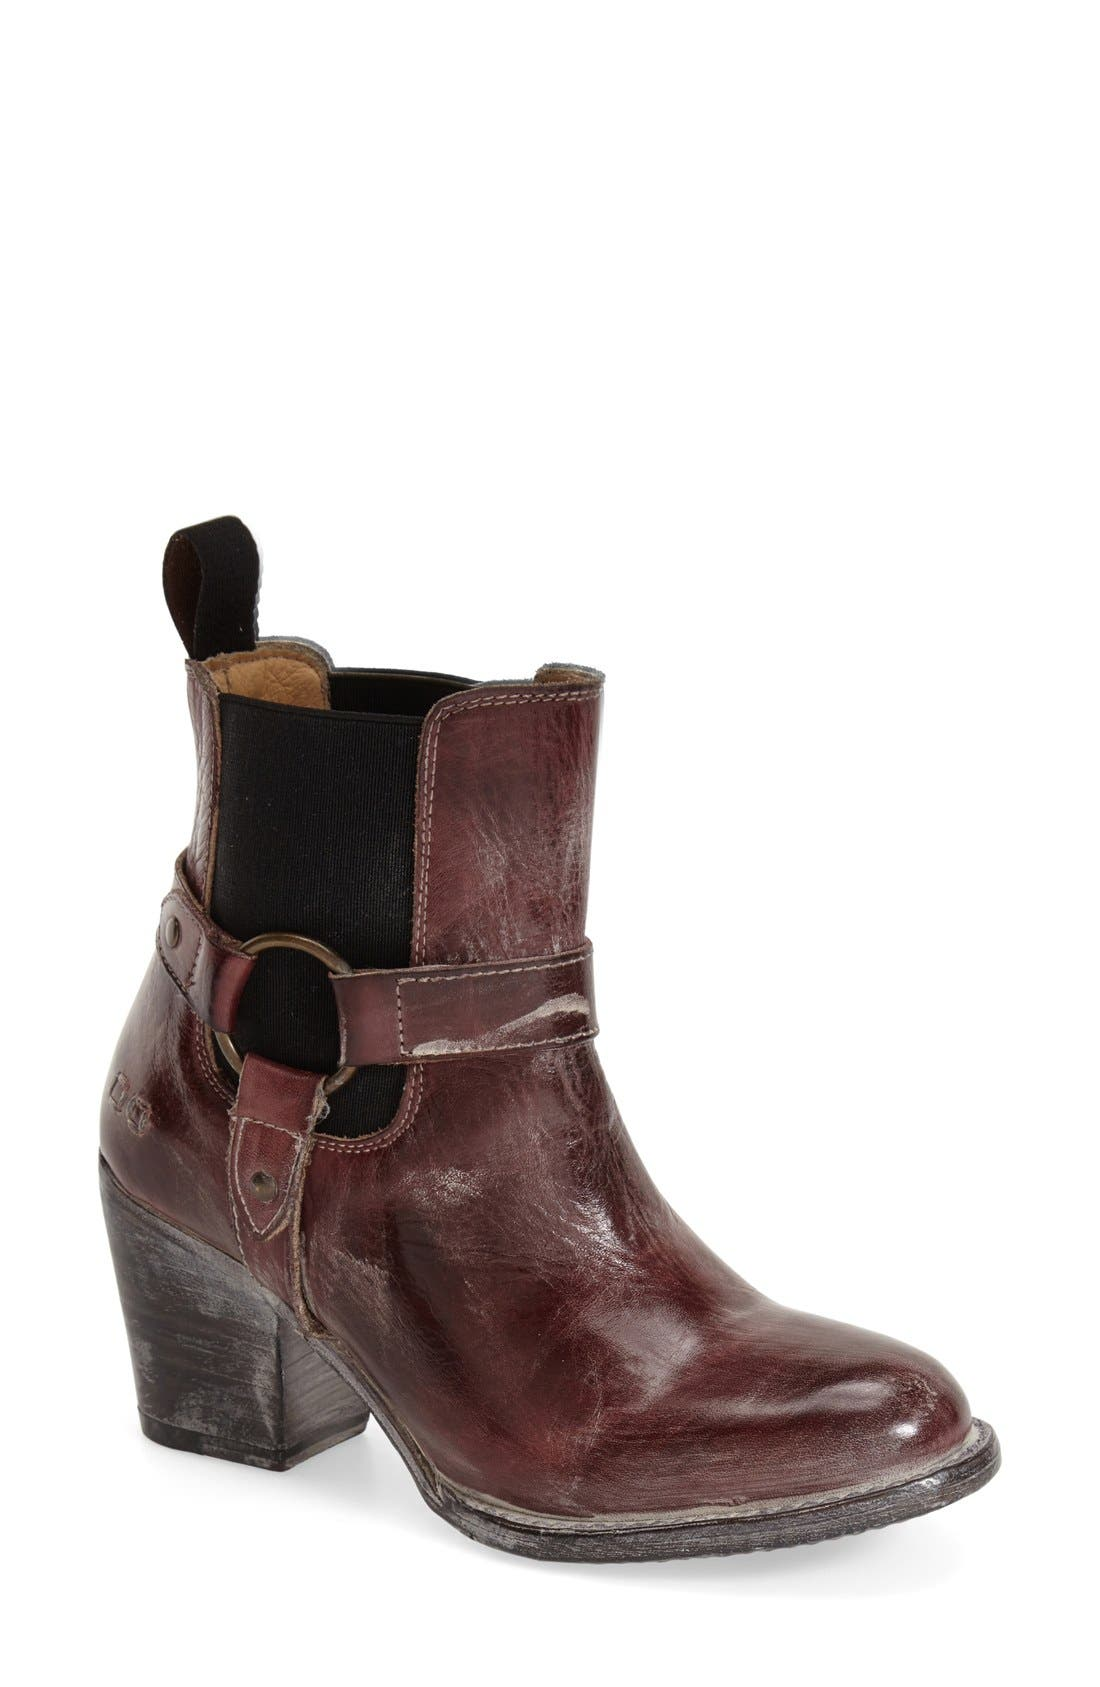 Alternate Image 1 Selected - Bed Stu 'Liberate' Harness Bootie (Women)